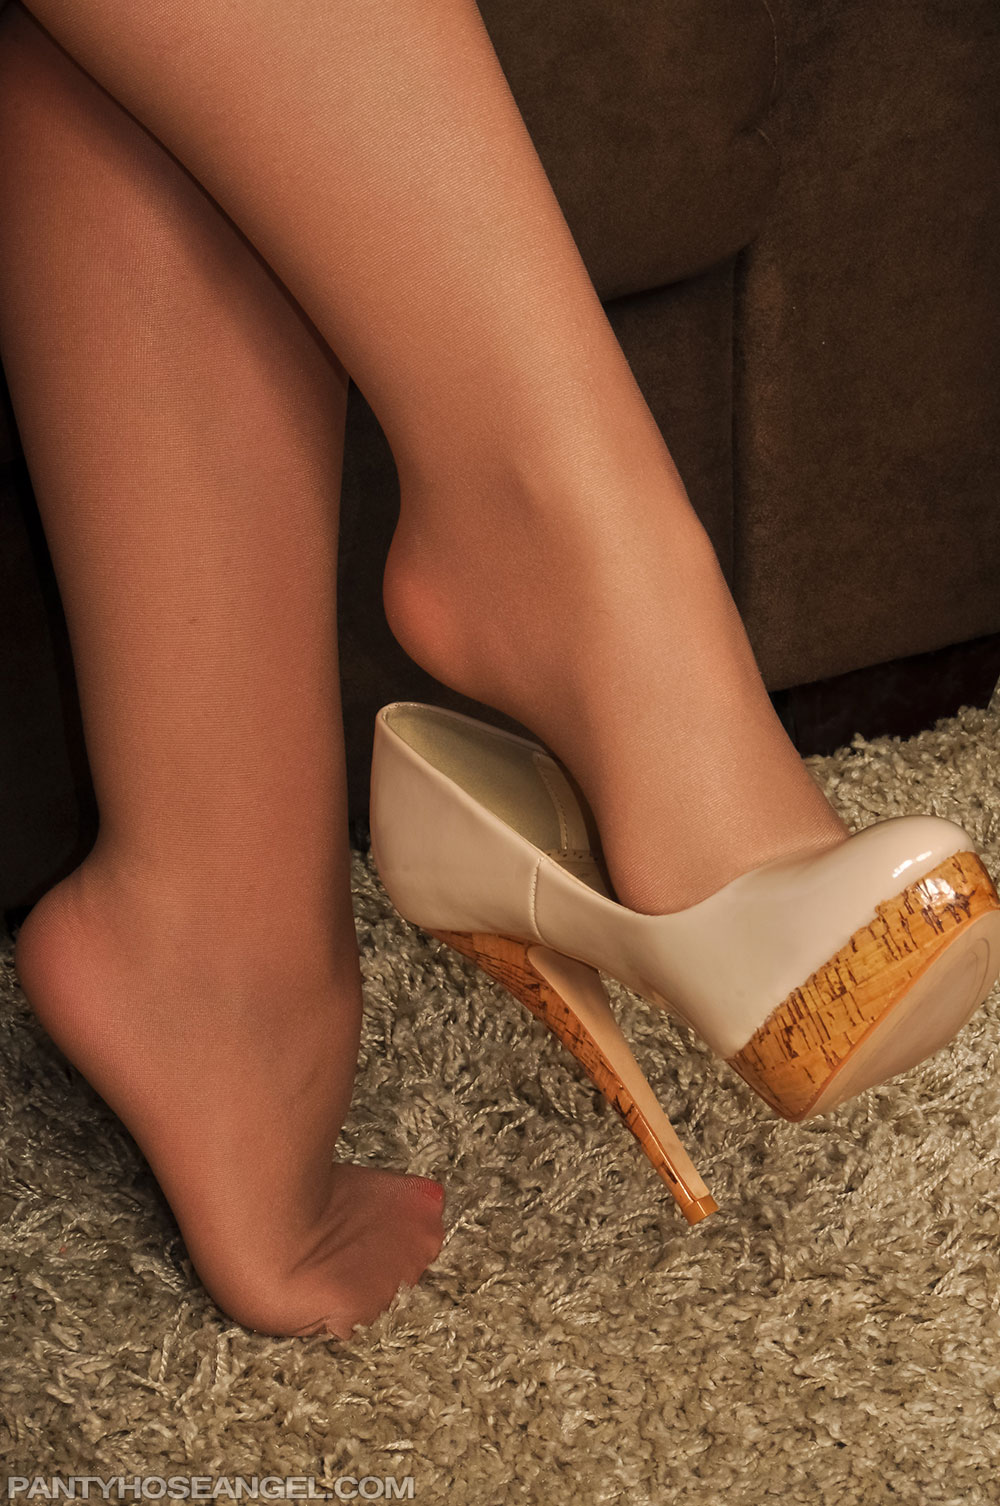 Mature feet and shoes updated